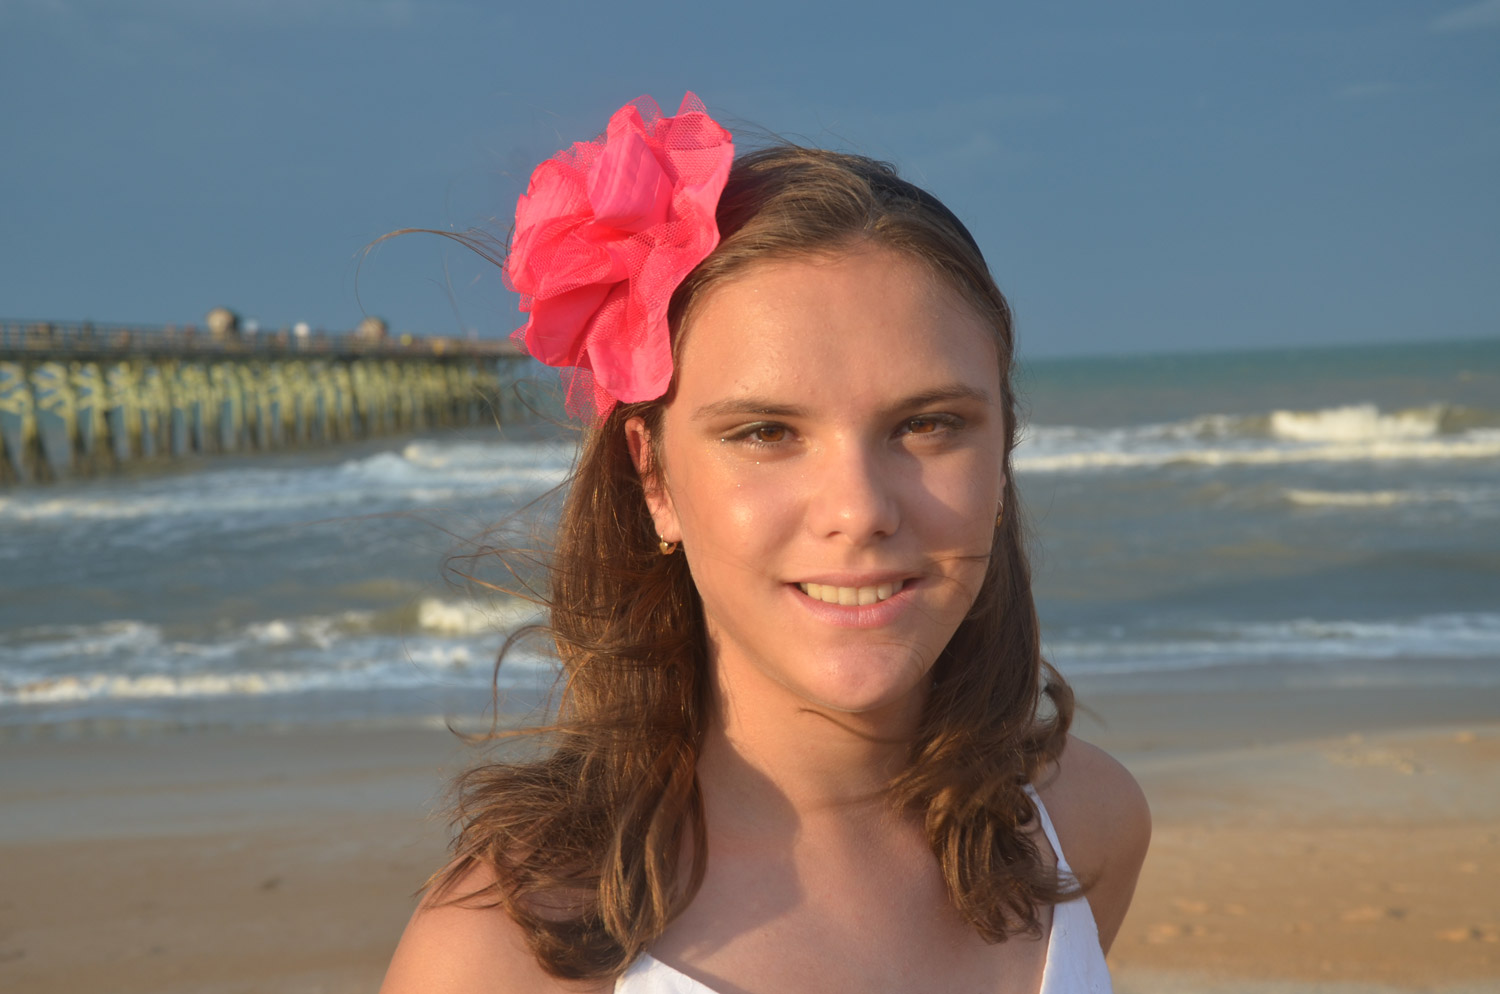 Miss Junior 2011 Flagler County Contestants, Ages 12-15